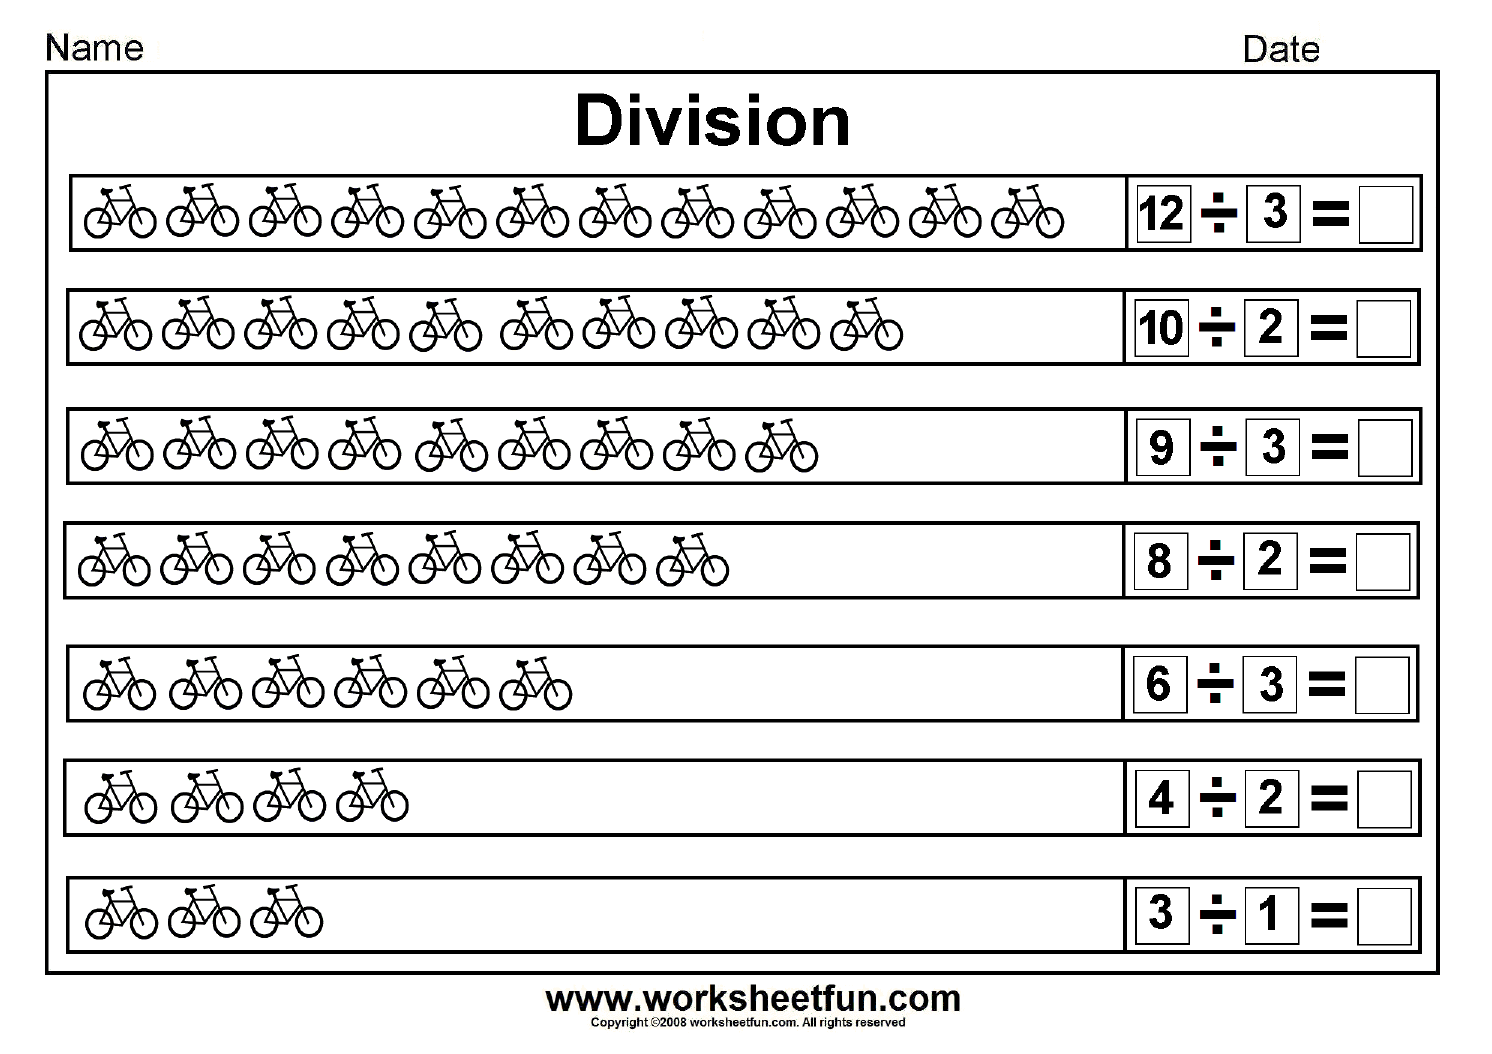 Beginners Division Worksheets